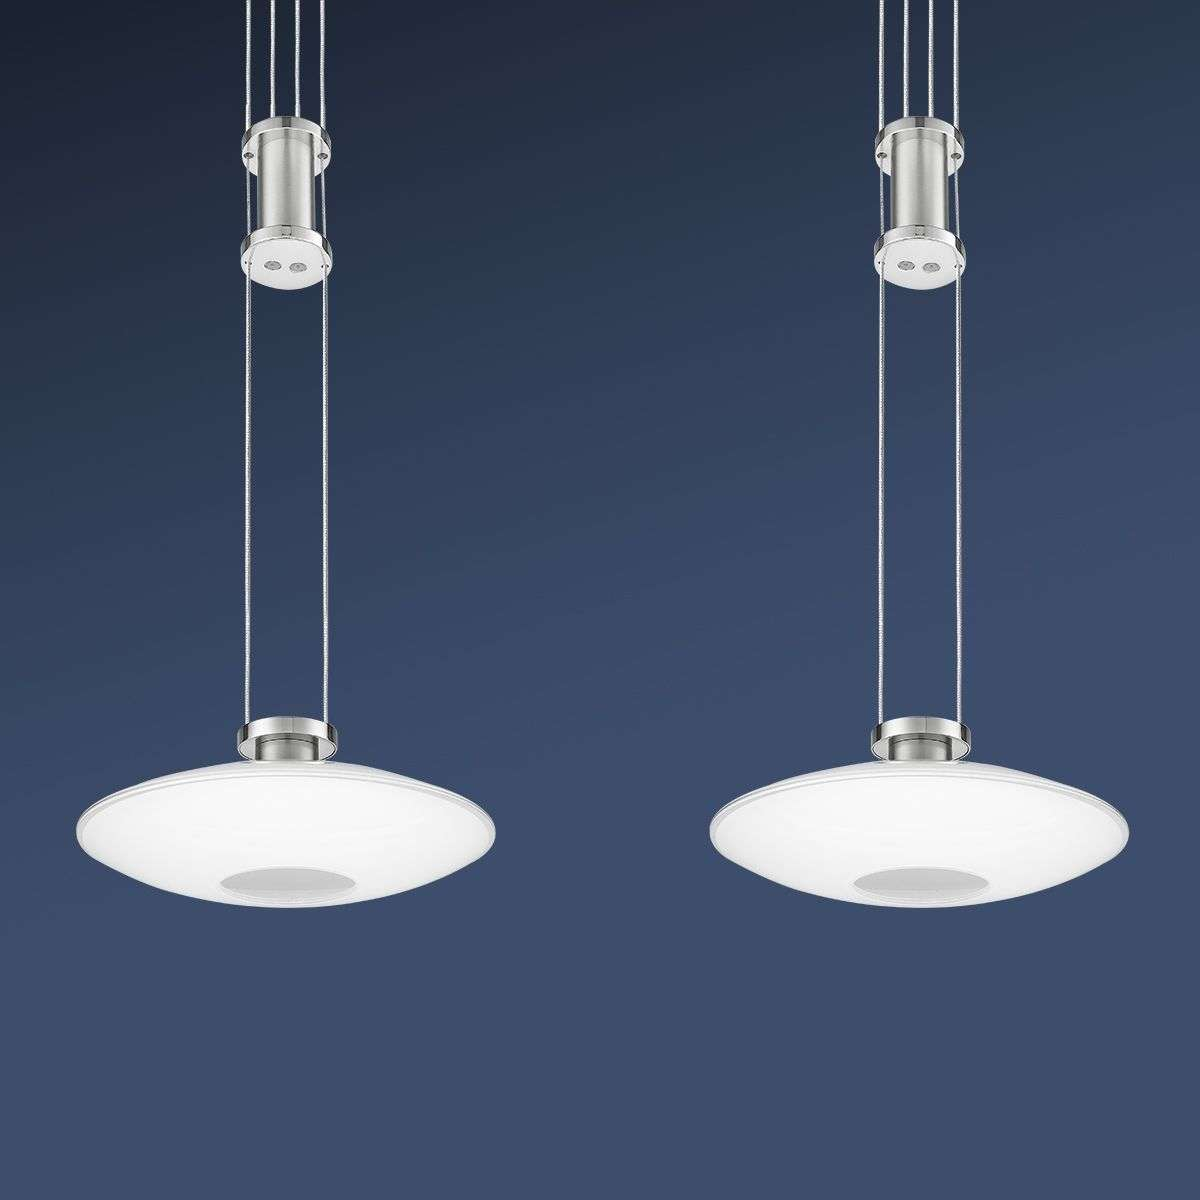 Lampes New Suspension Nickel Tcqhrsd Elina Led Deux À gbf6vYy7